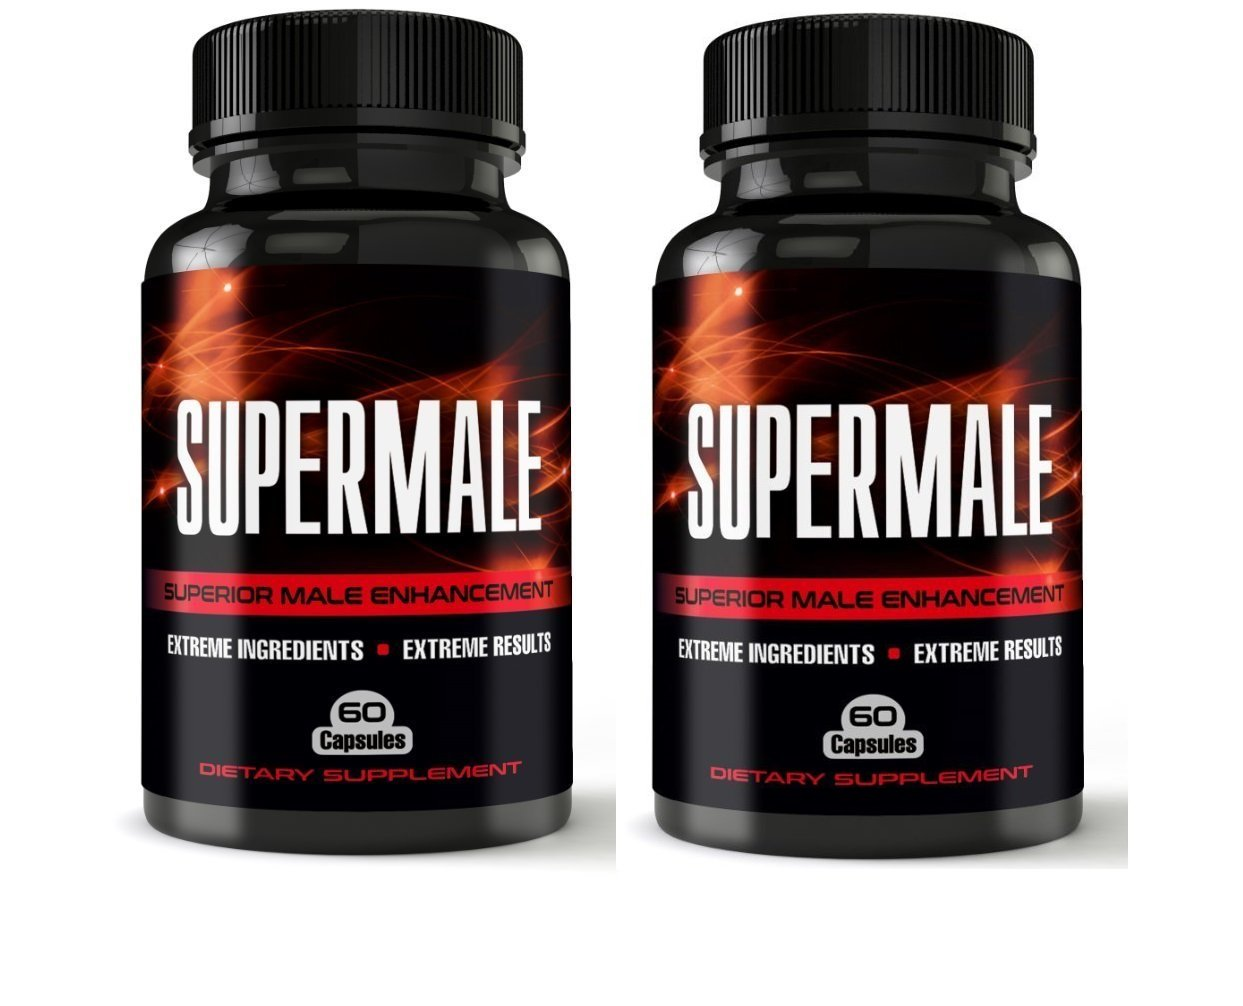 SuperMale - 2 Month Supply - Superior Male Enhancement Pills Increased Energy, Size, Sex Drive - Boost Libido and Testosterone - Sex Pills, Erection Pills, Enlargement Pills, All Natural Enhancement